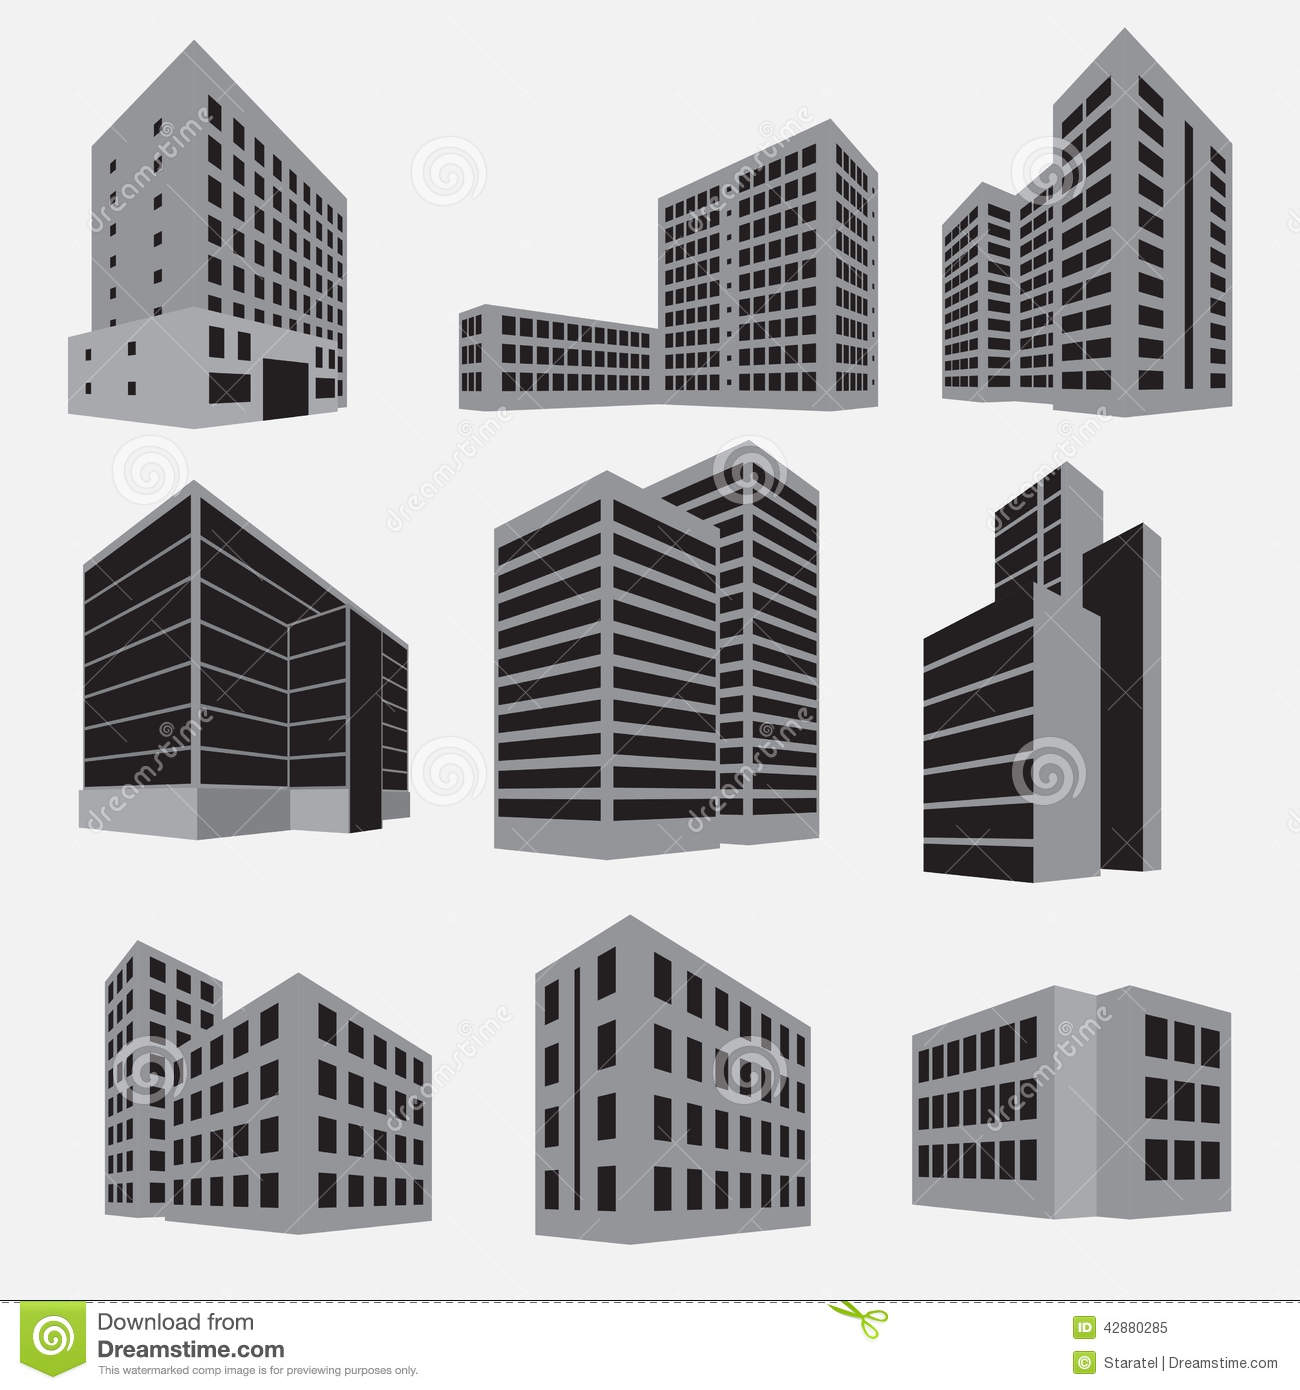 Types Of Apartment Buildings: Building Icon Set. Vector Illustration Stock Vector